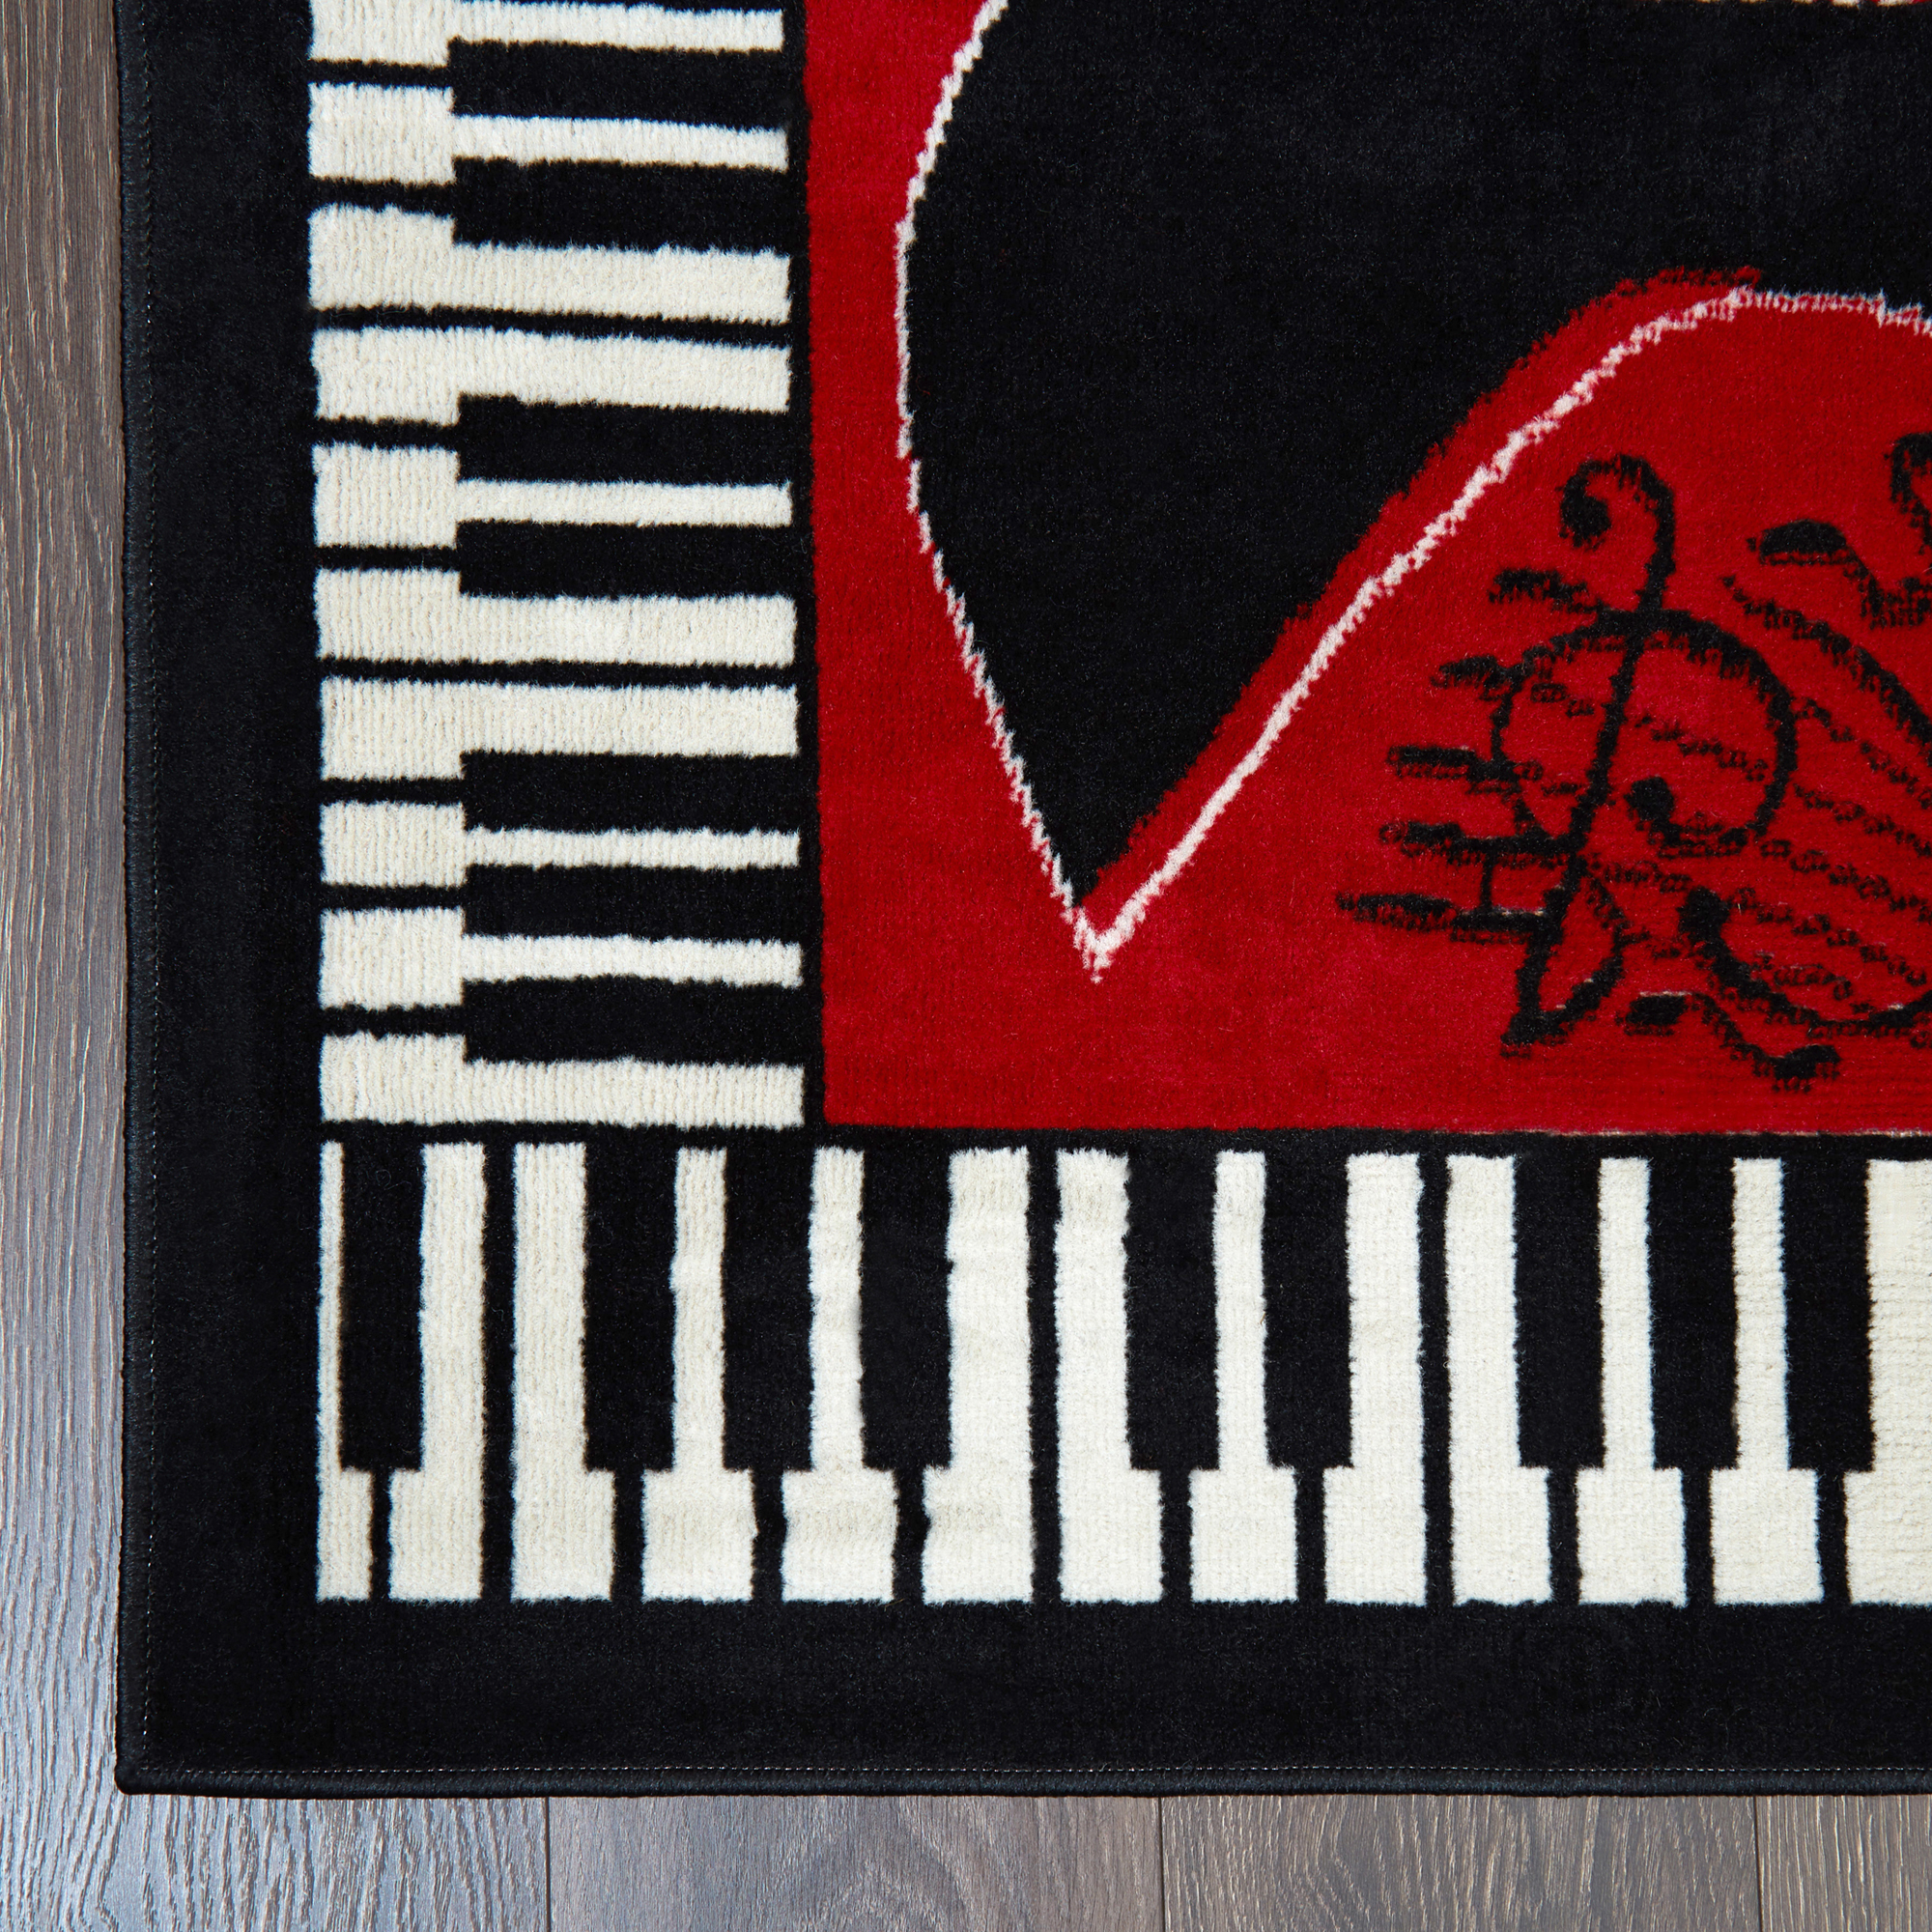 Musical Instrument Piano Key Bordered Red Area Rug Guitar